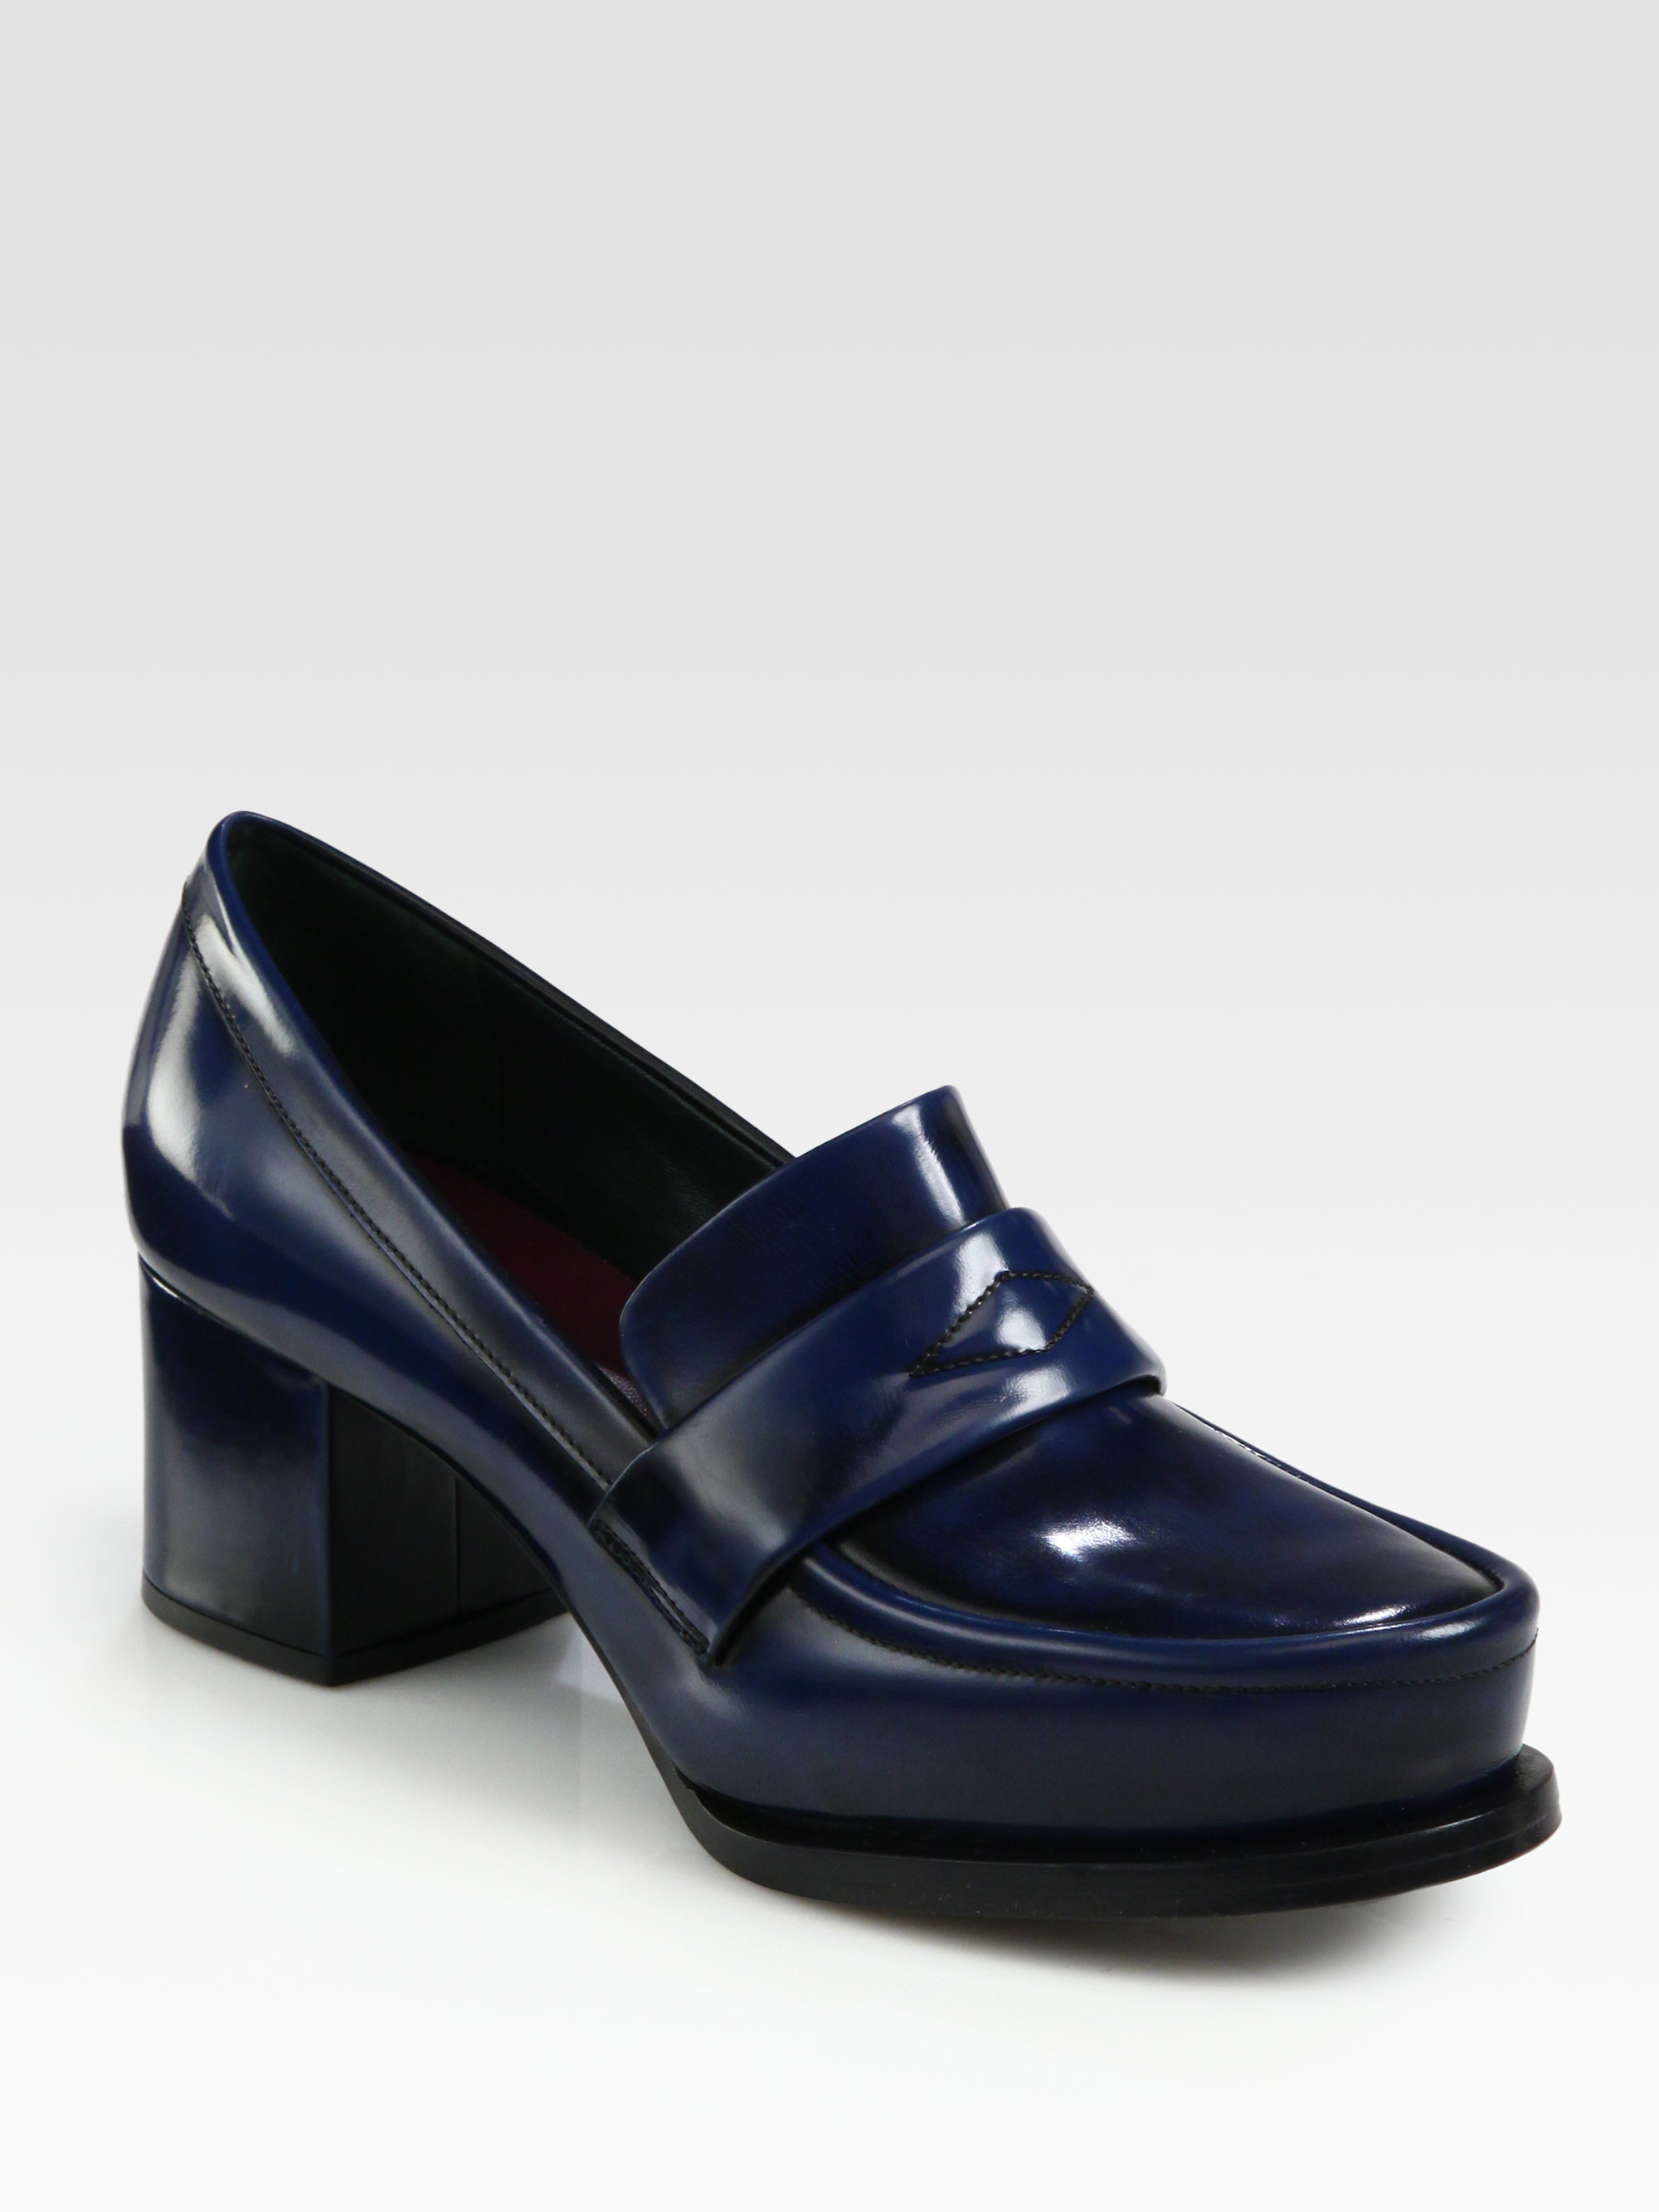 Jil Sander Leather Loafer Pumps free shipping footlocker pictures F32Zs